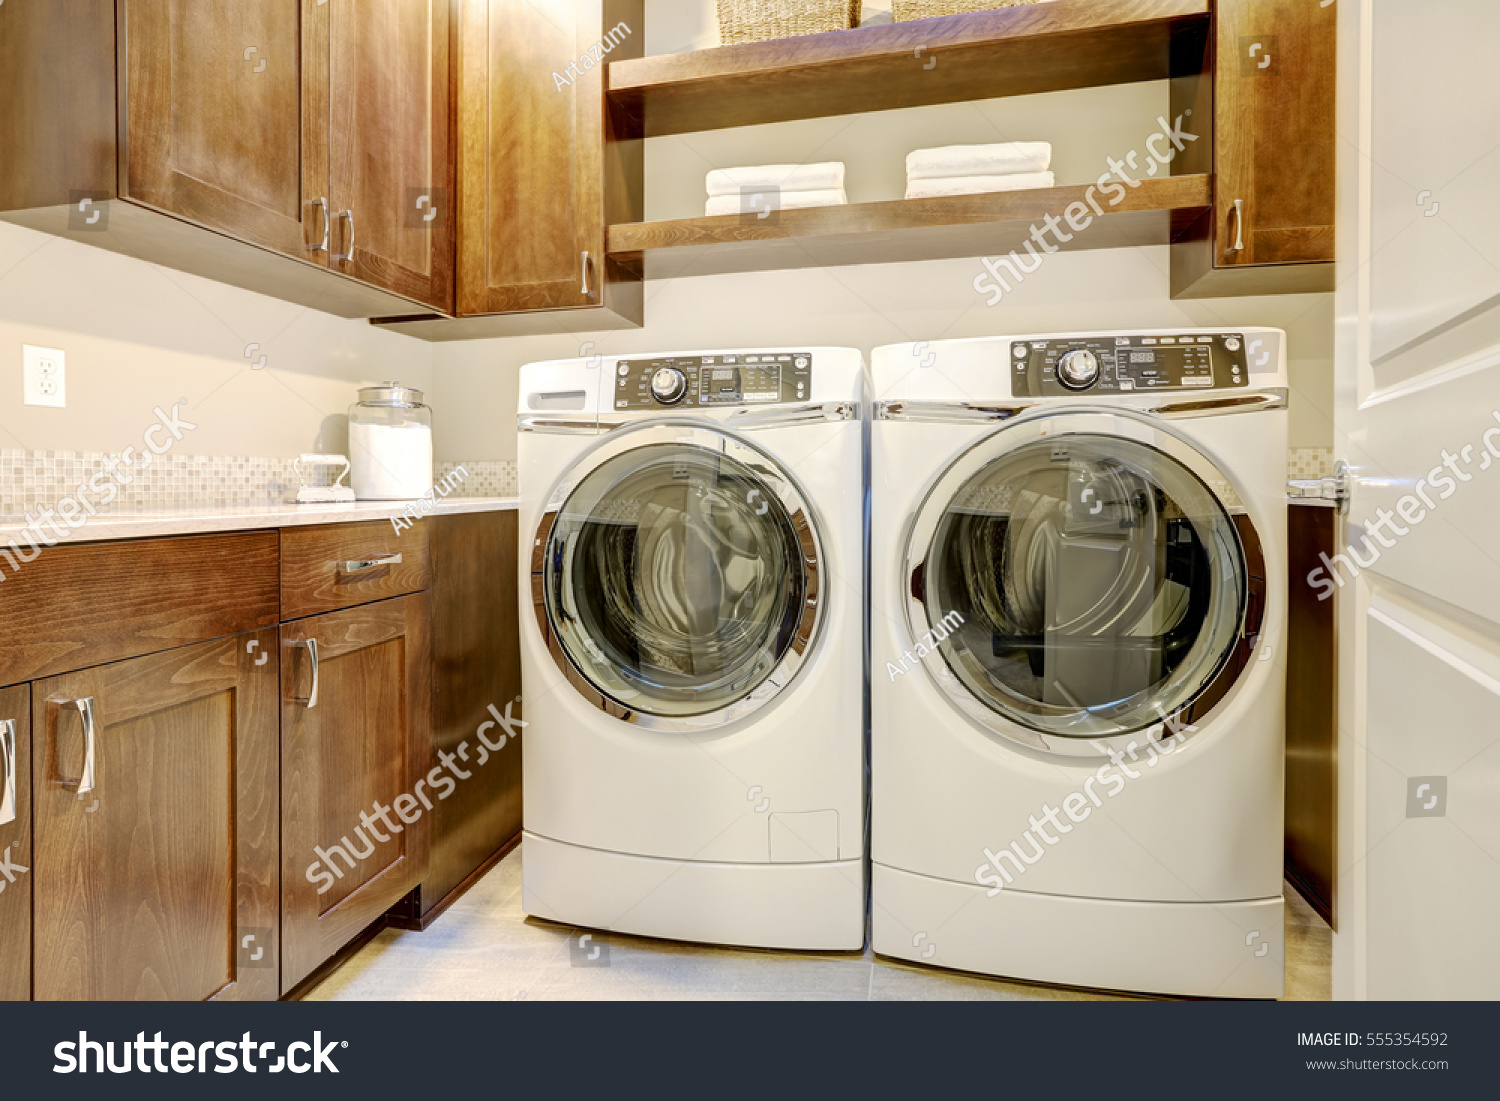 White And Brown Laundry Room Features Modern Appliances Placed Under  Shelves And Cabinets. Northwest,